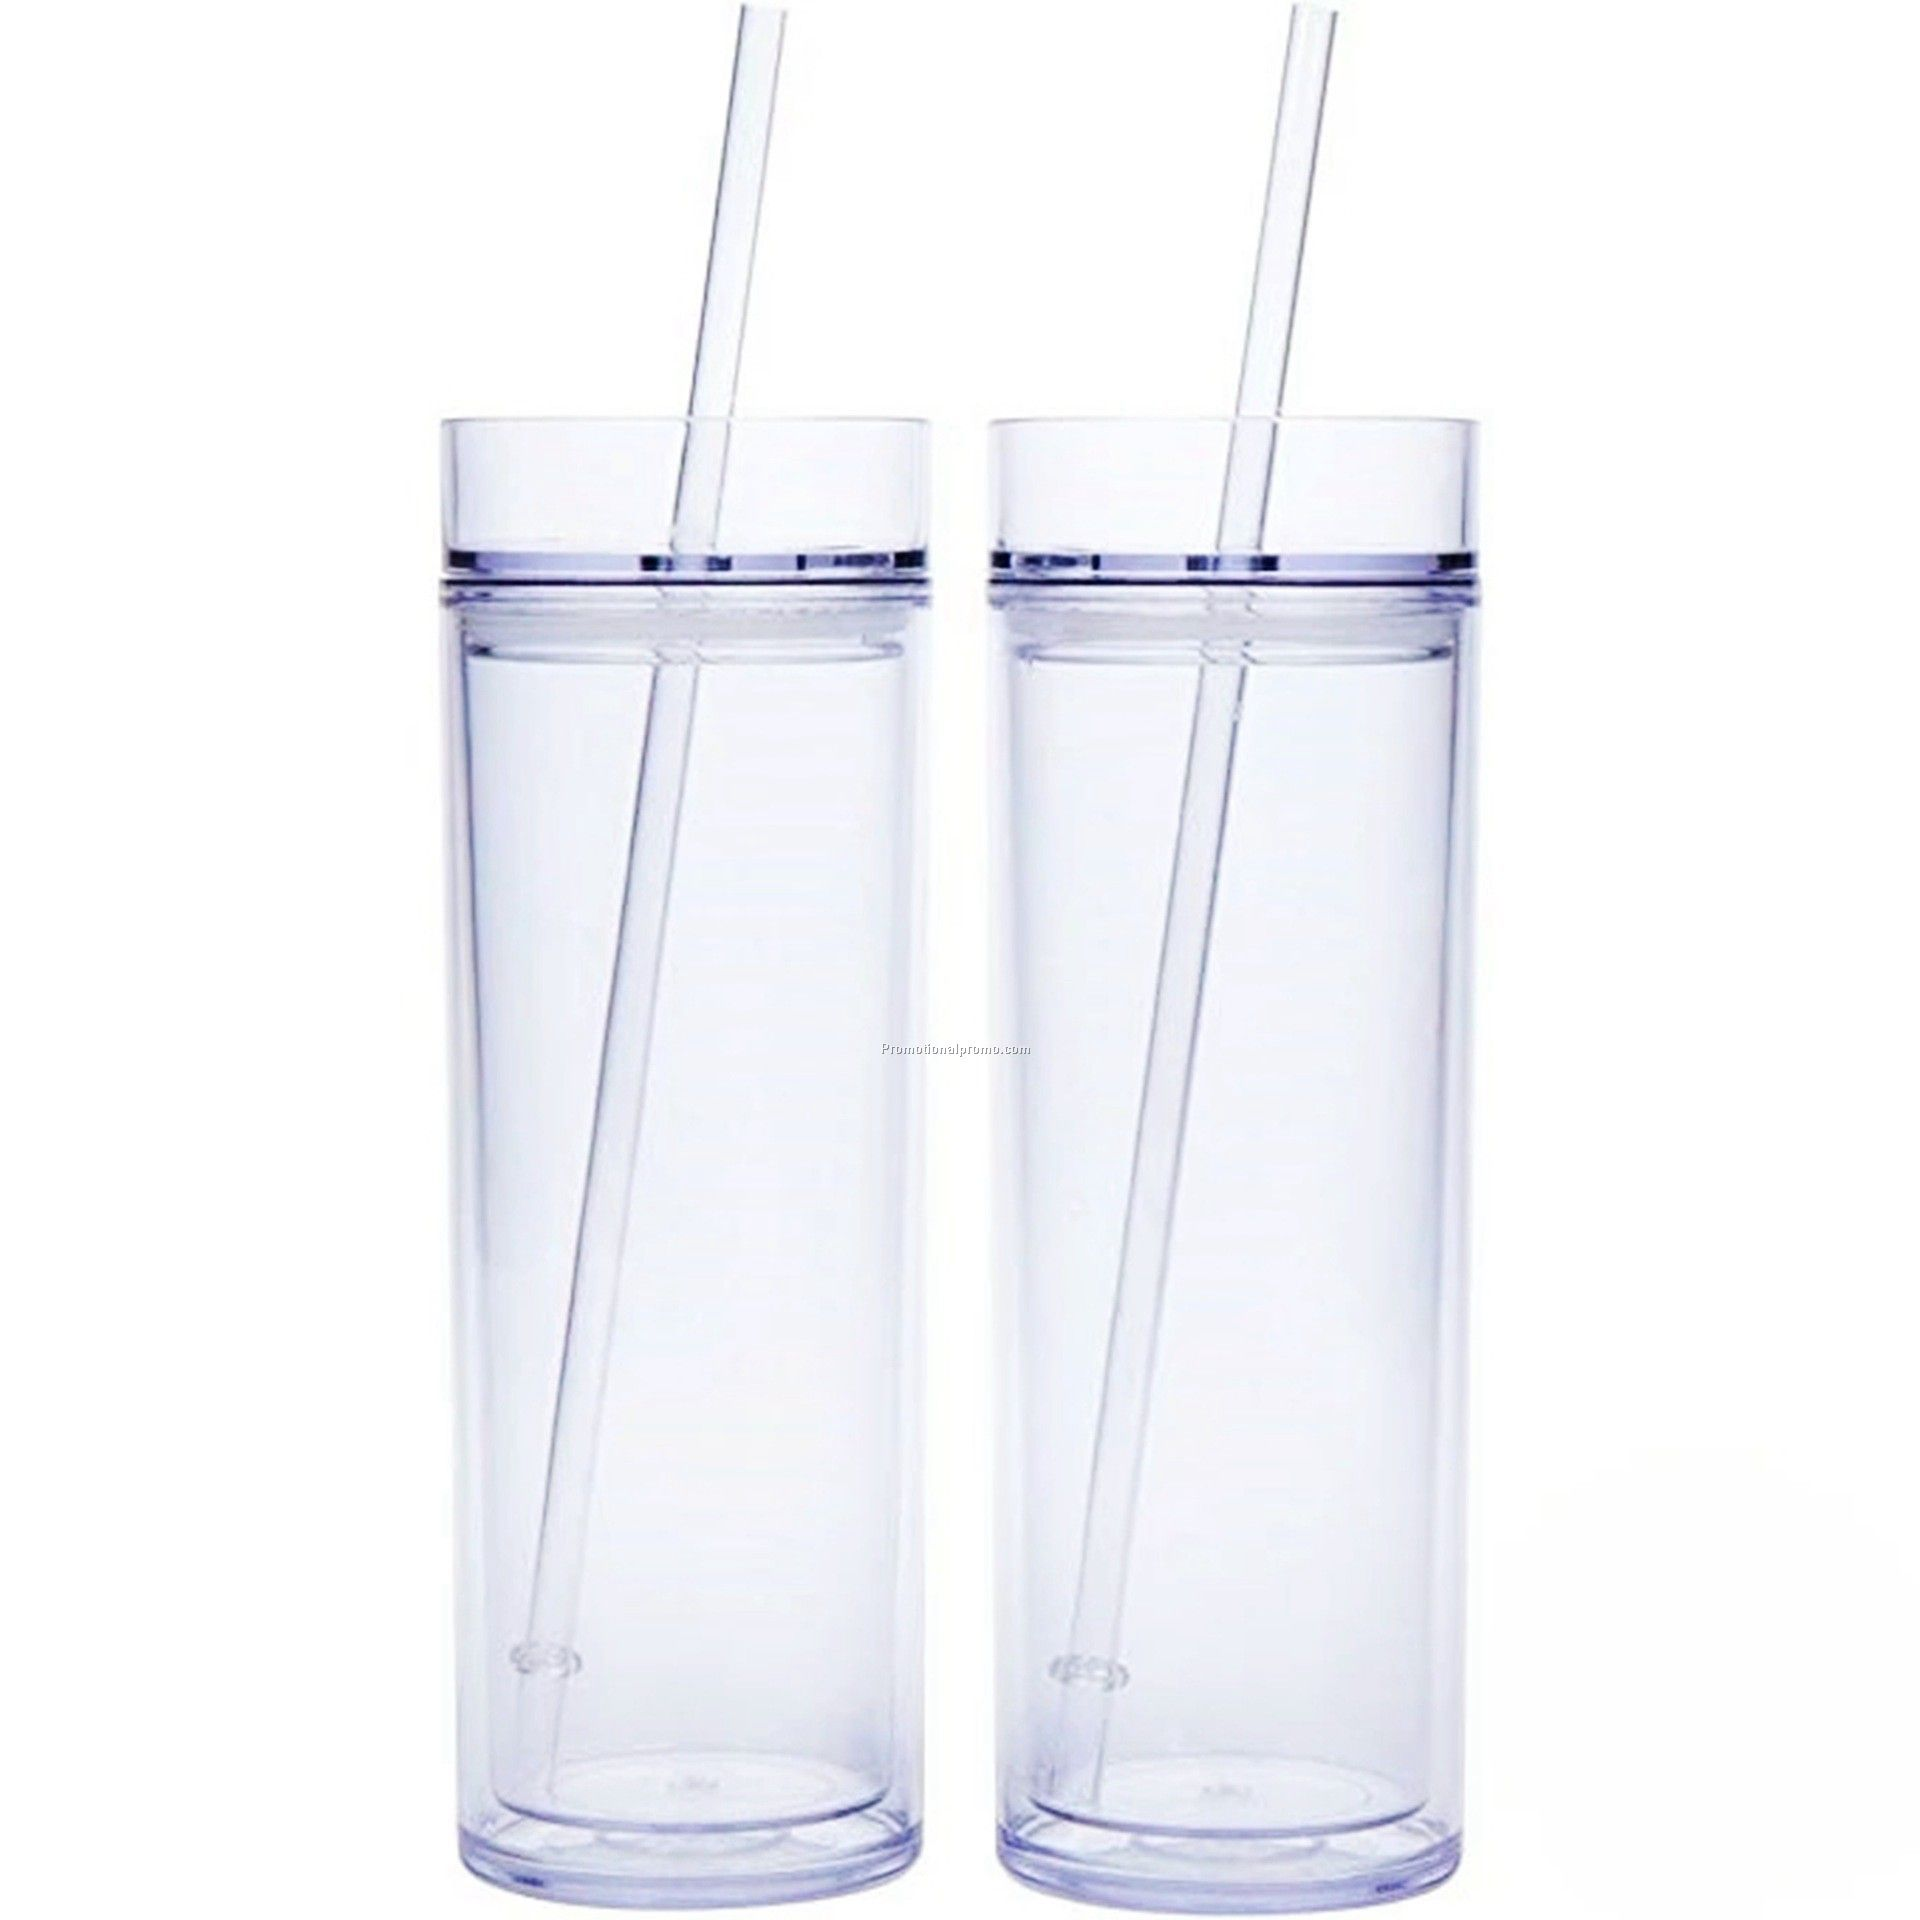 Plastic Skinny Double-layer Plastic Frosted 16OZ Straight Body Cup with Straw